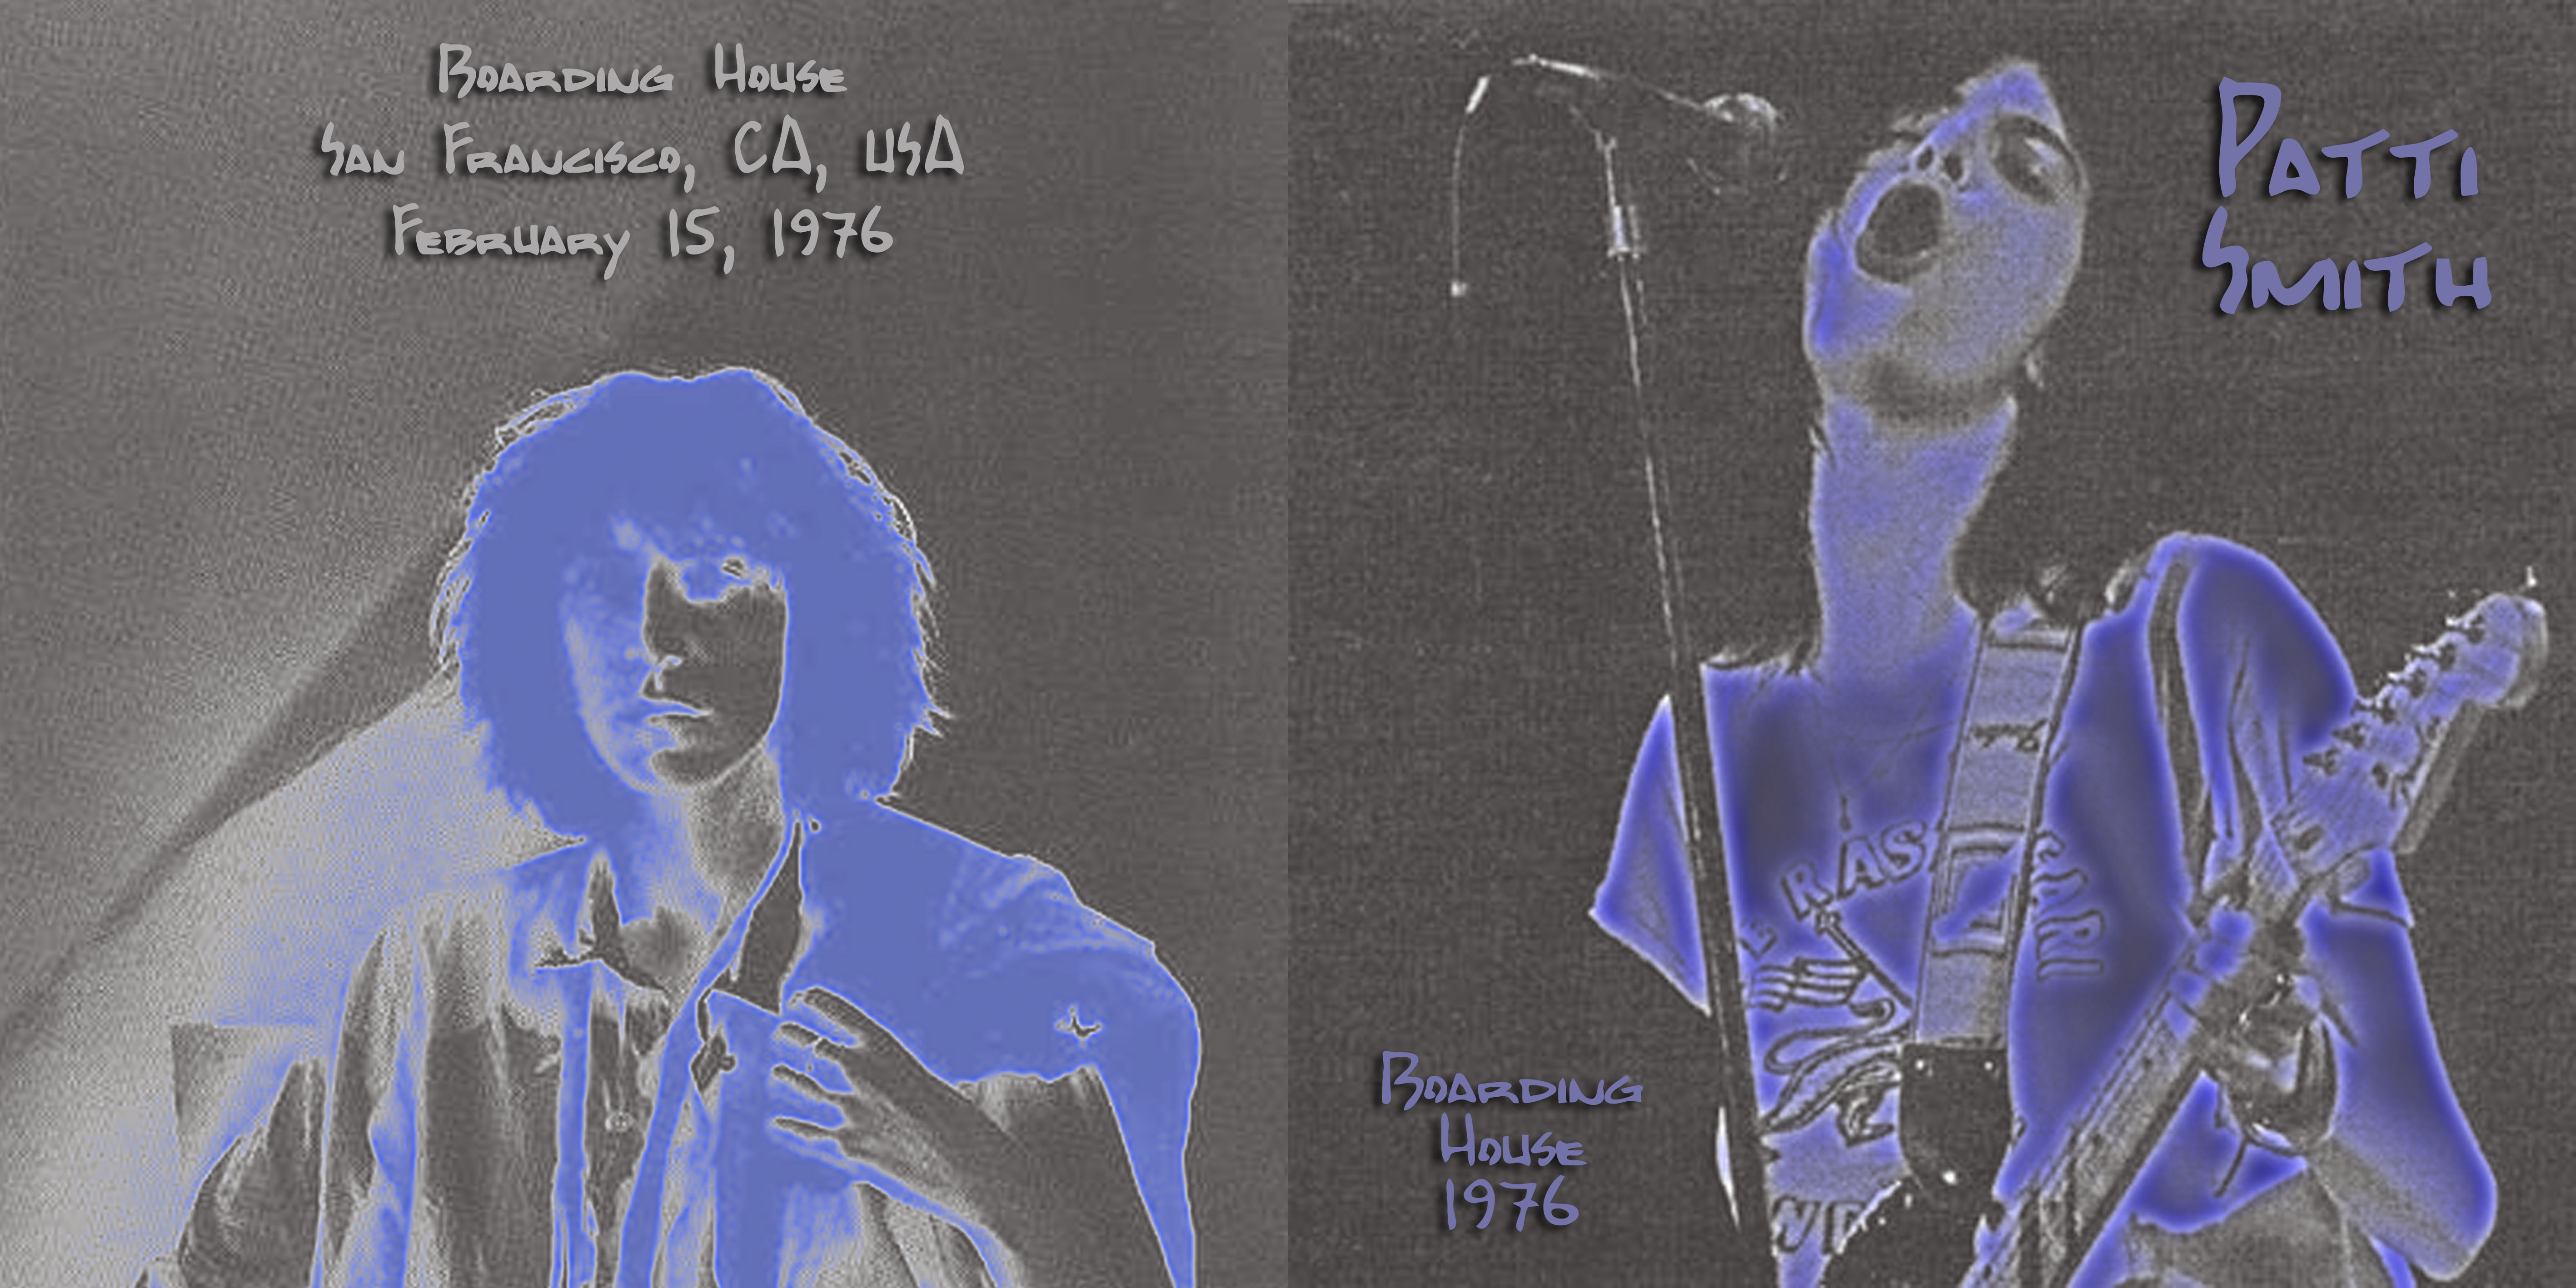 PattiSmith1976-02-15BoardingHouseSanFranciscoCA.jpg